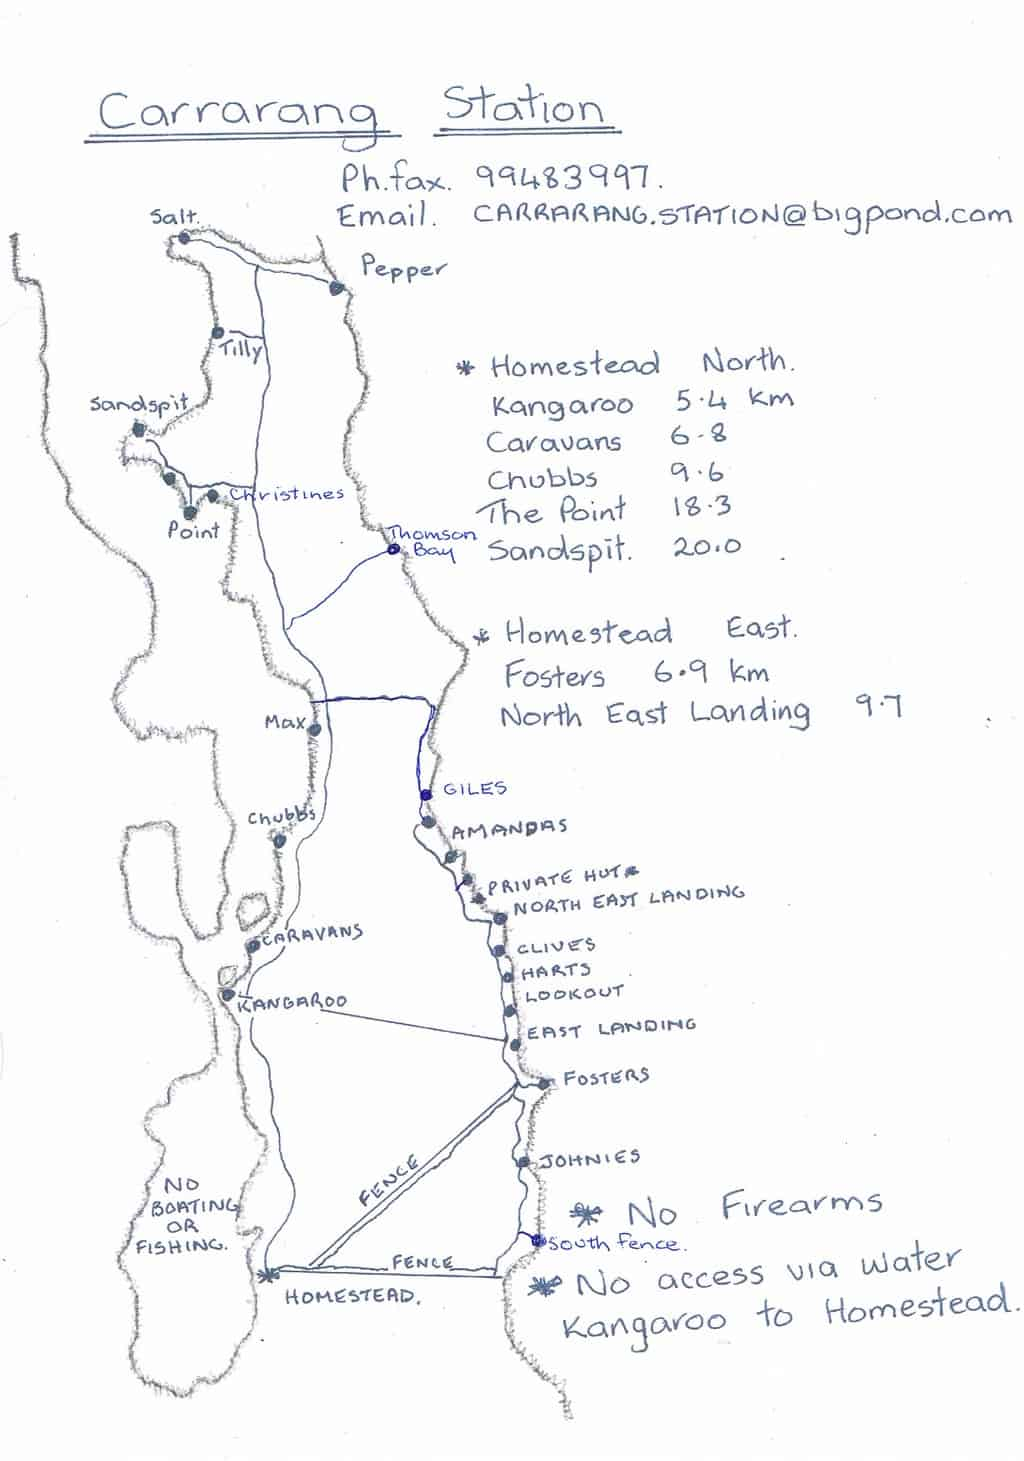 Carrarang station map